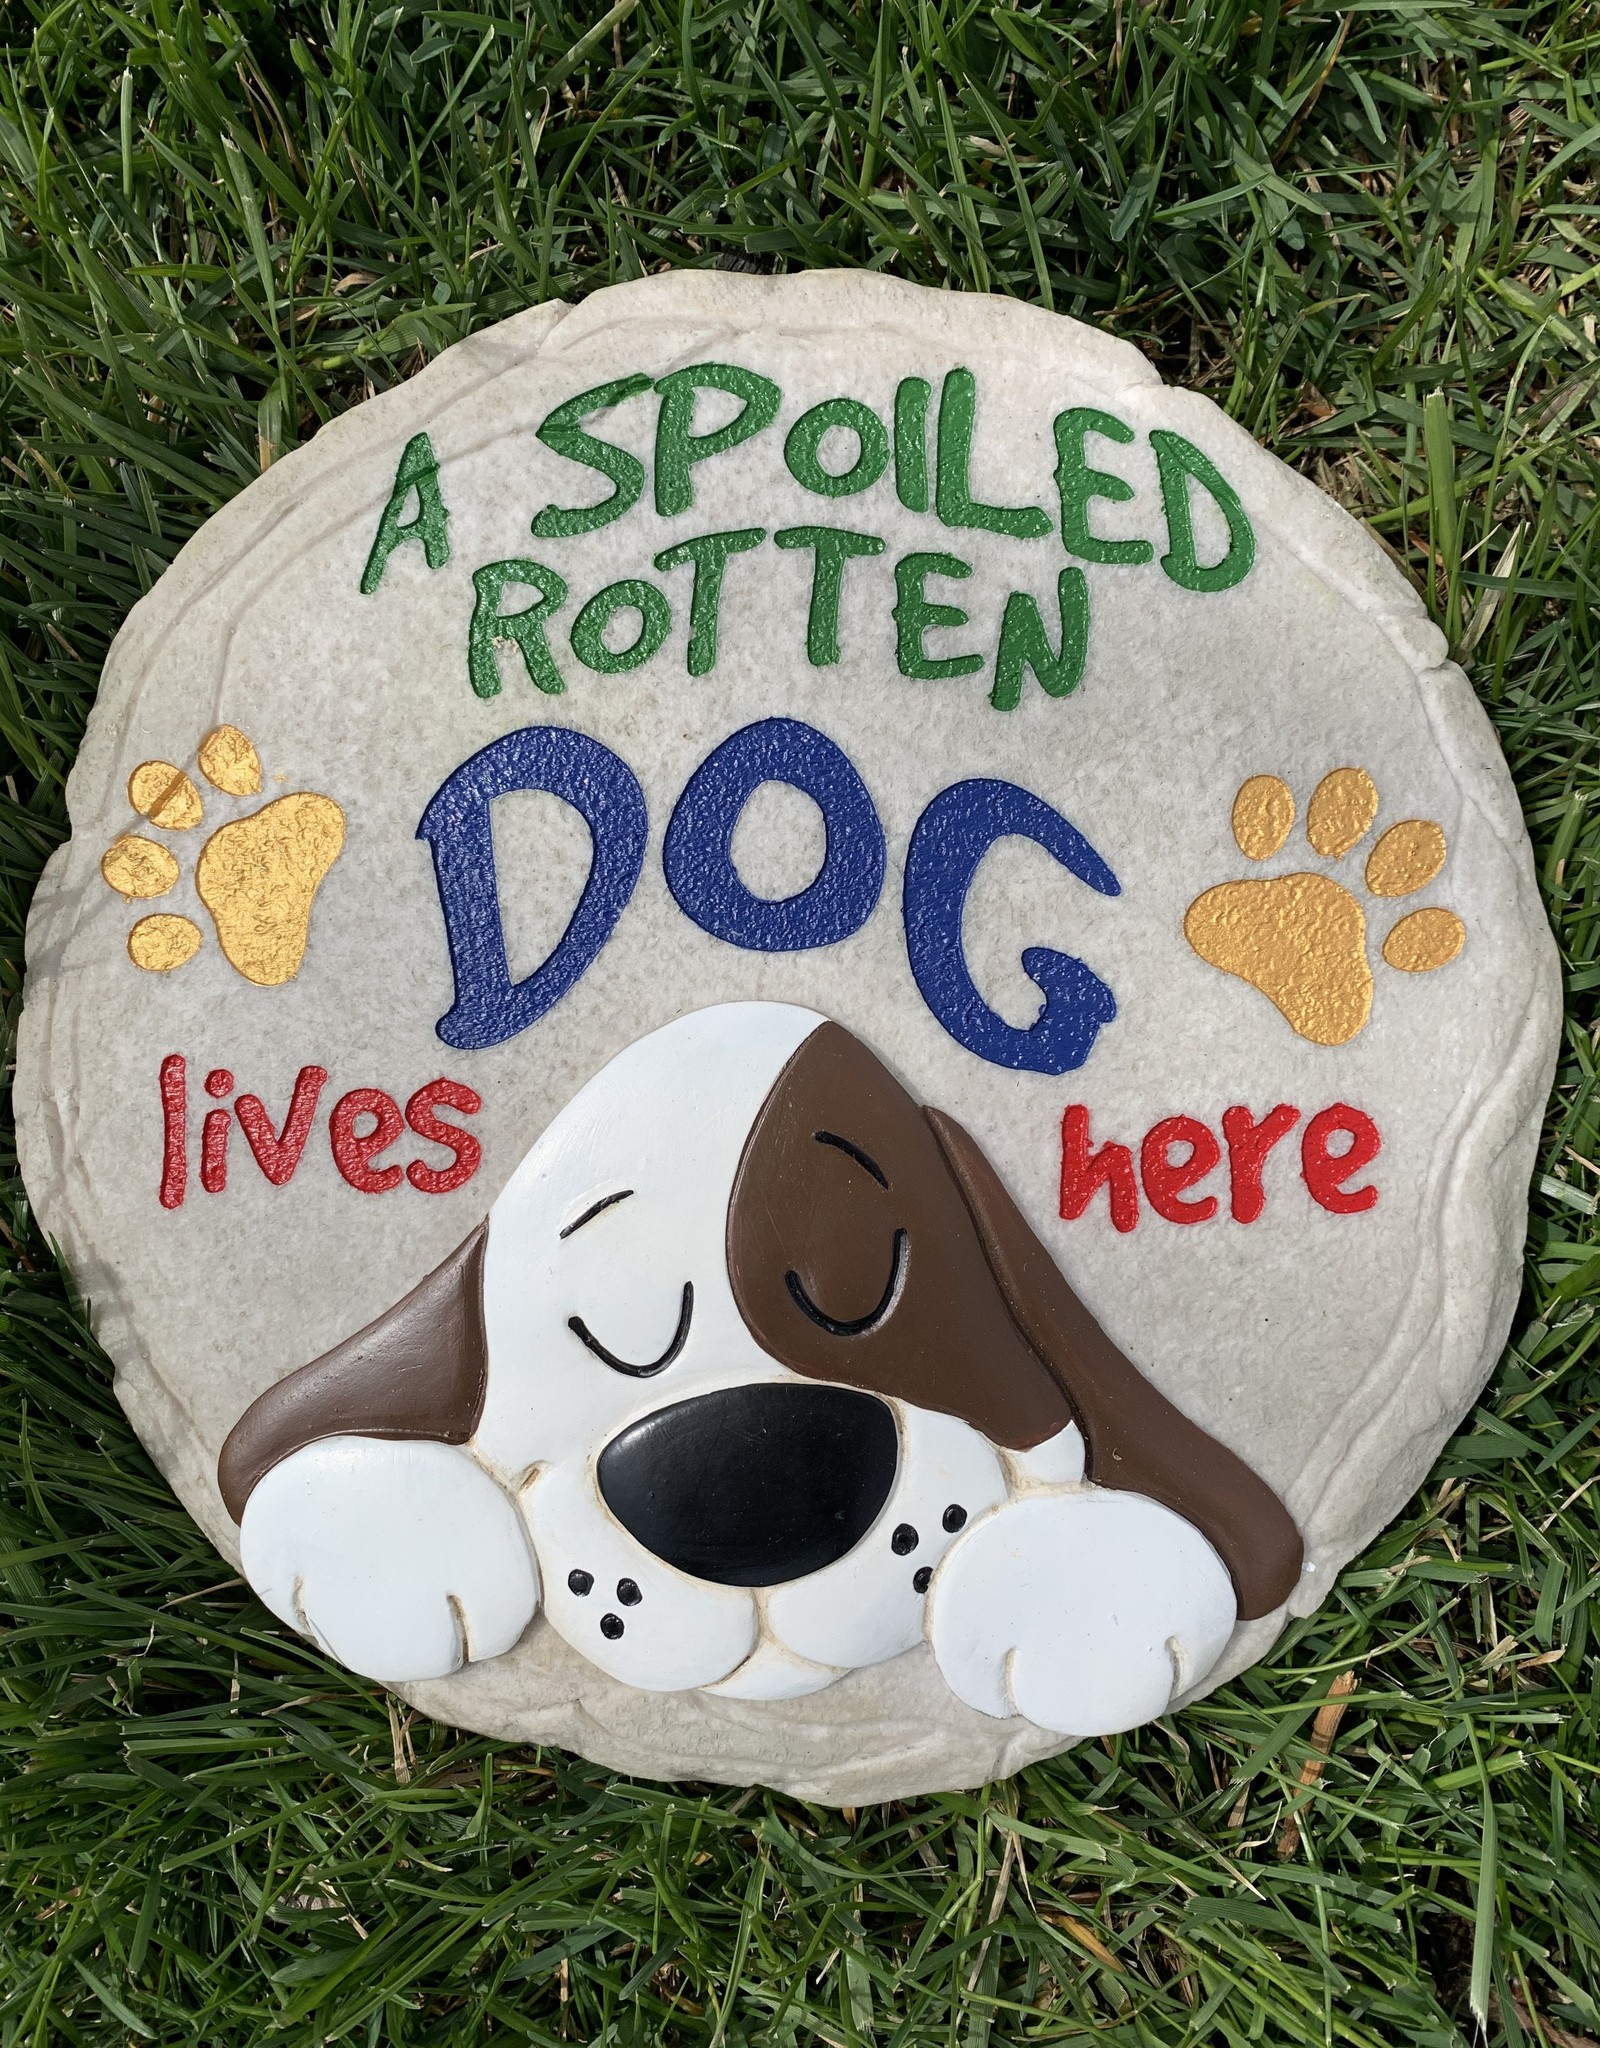 SPOONTIQUES, INC. SPOILED ROTTEN DOG LIVES HERE STEPPING STONE